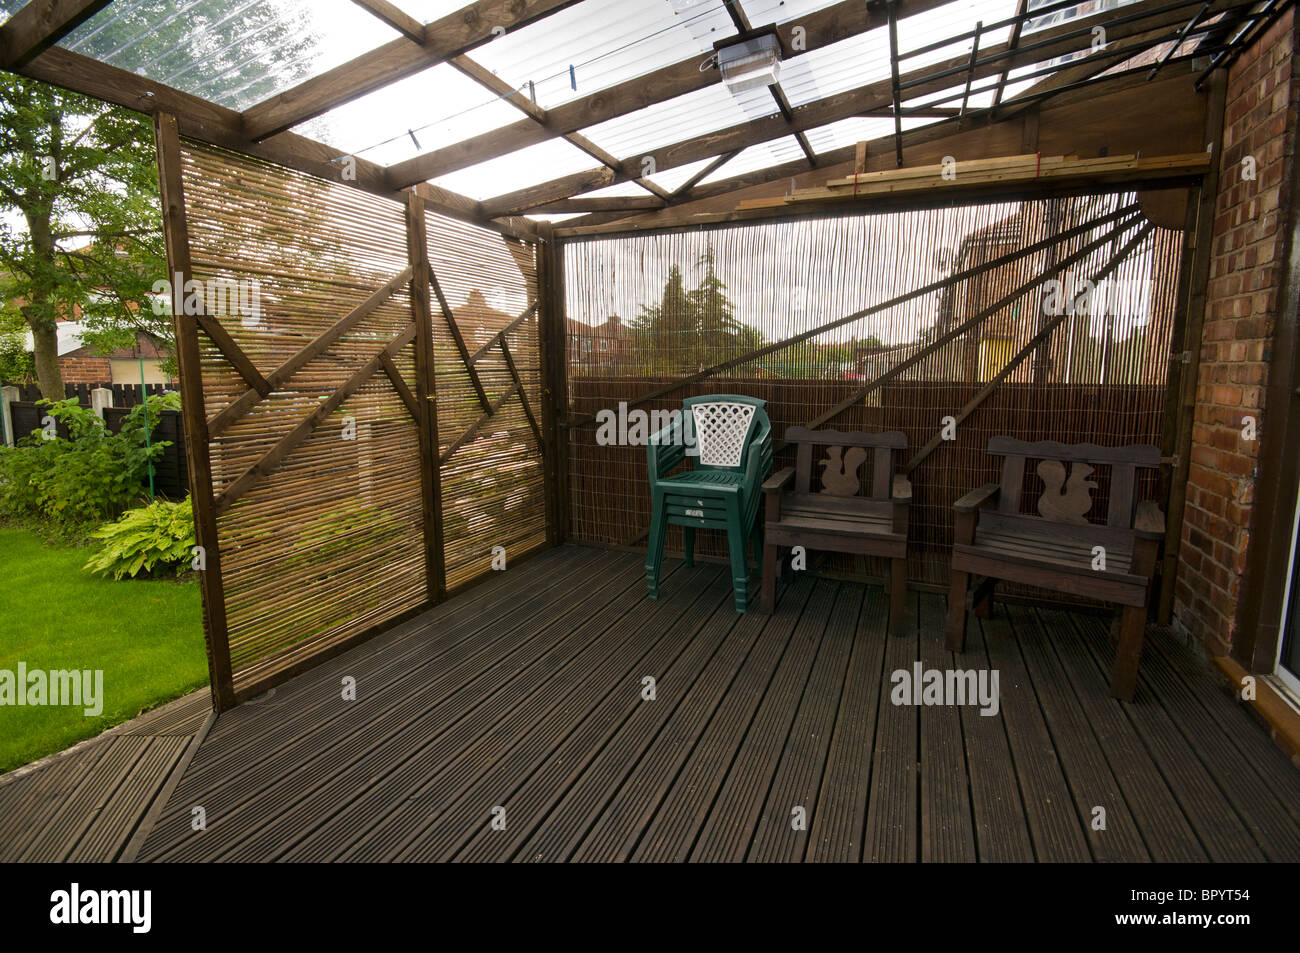 Home Built Patio Decking With Corrugated Plastic Roofing And Movable  Screening Panels In A Domestic Setting. Manchester, UK.